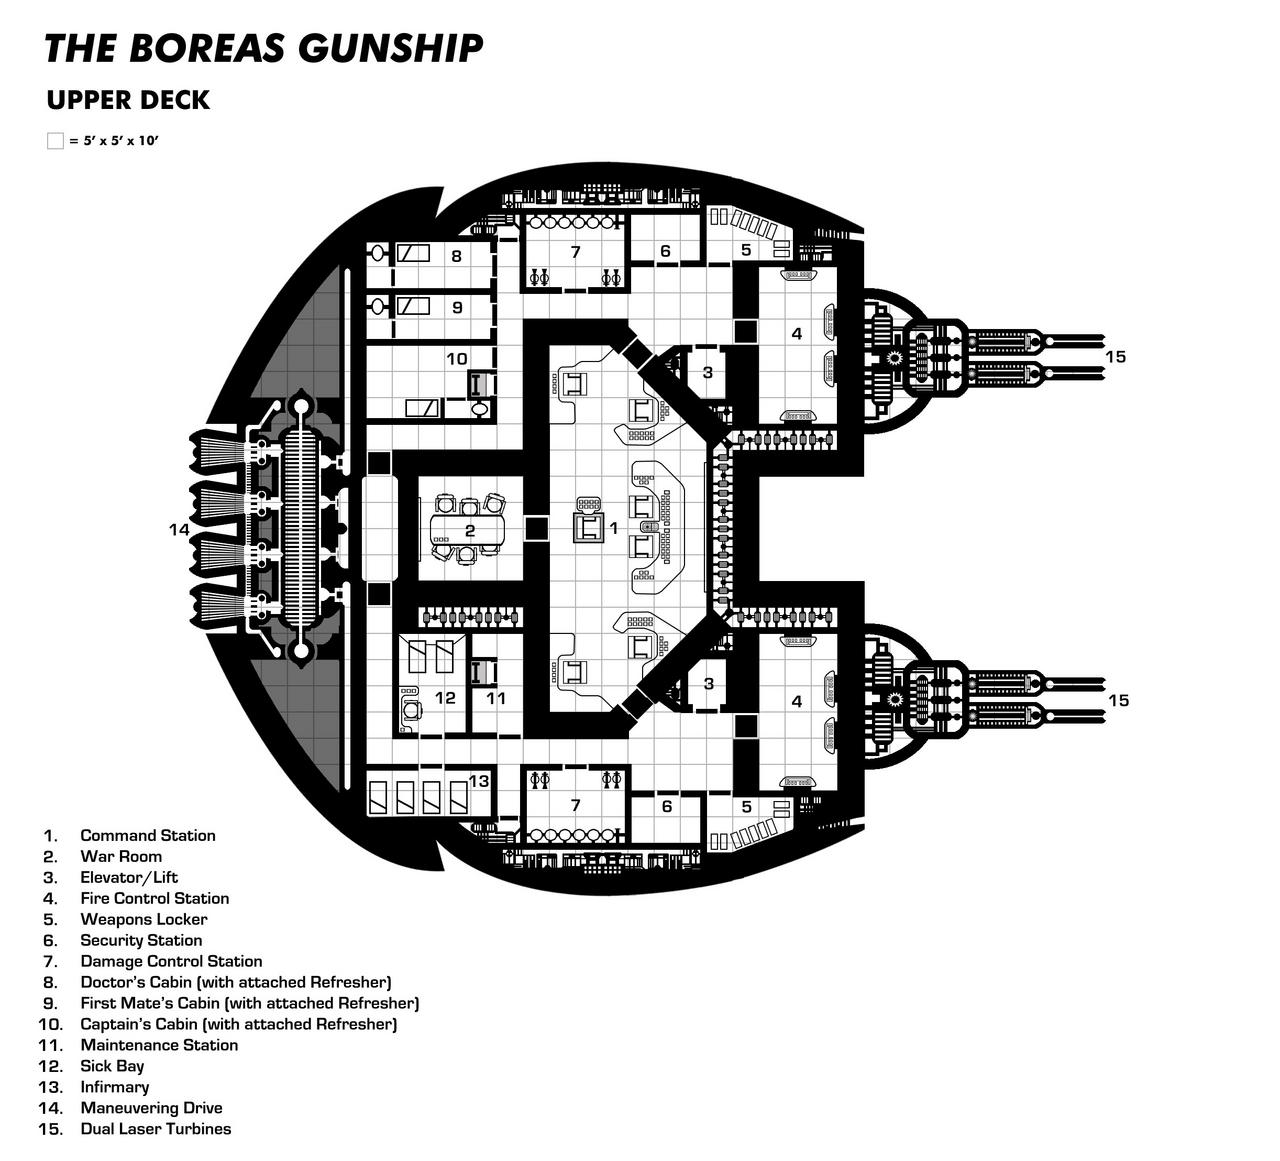 Boreas Upper Deck (Gun Ship)